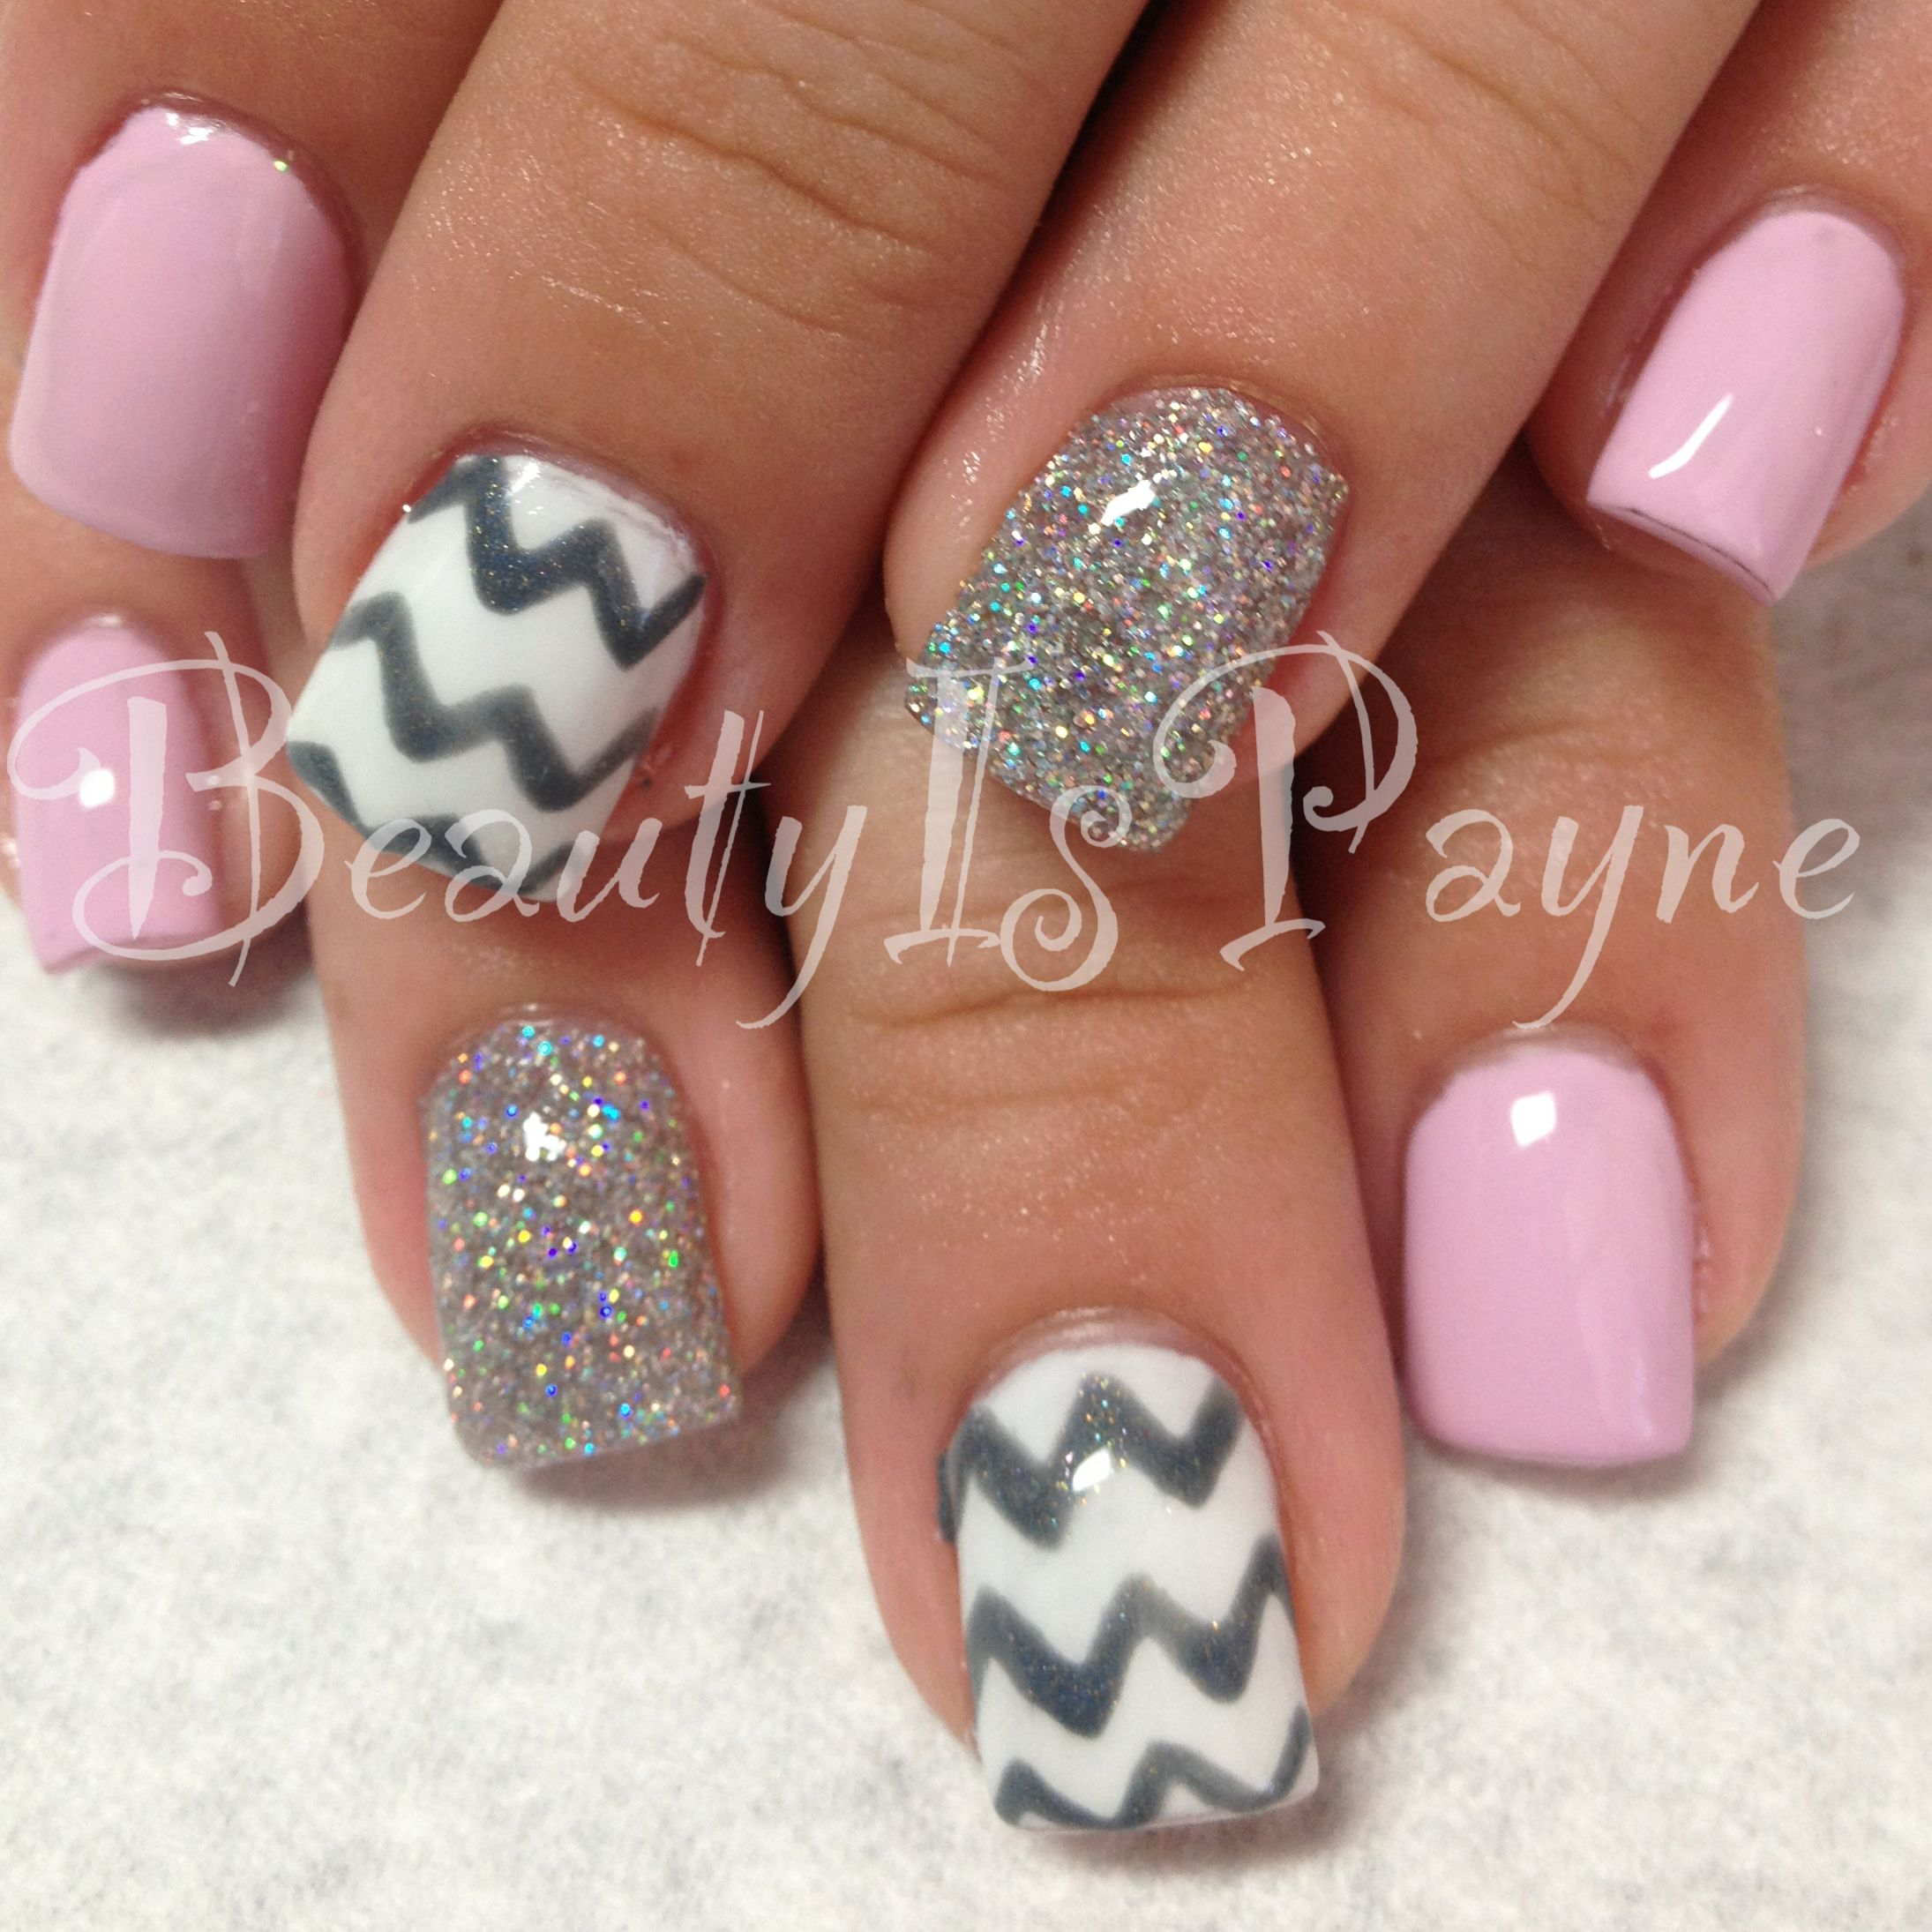 A Pretty Design For Shellac Nails Maybe Without The Pink All Silver